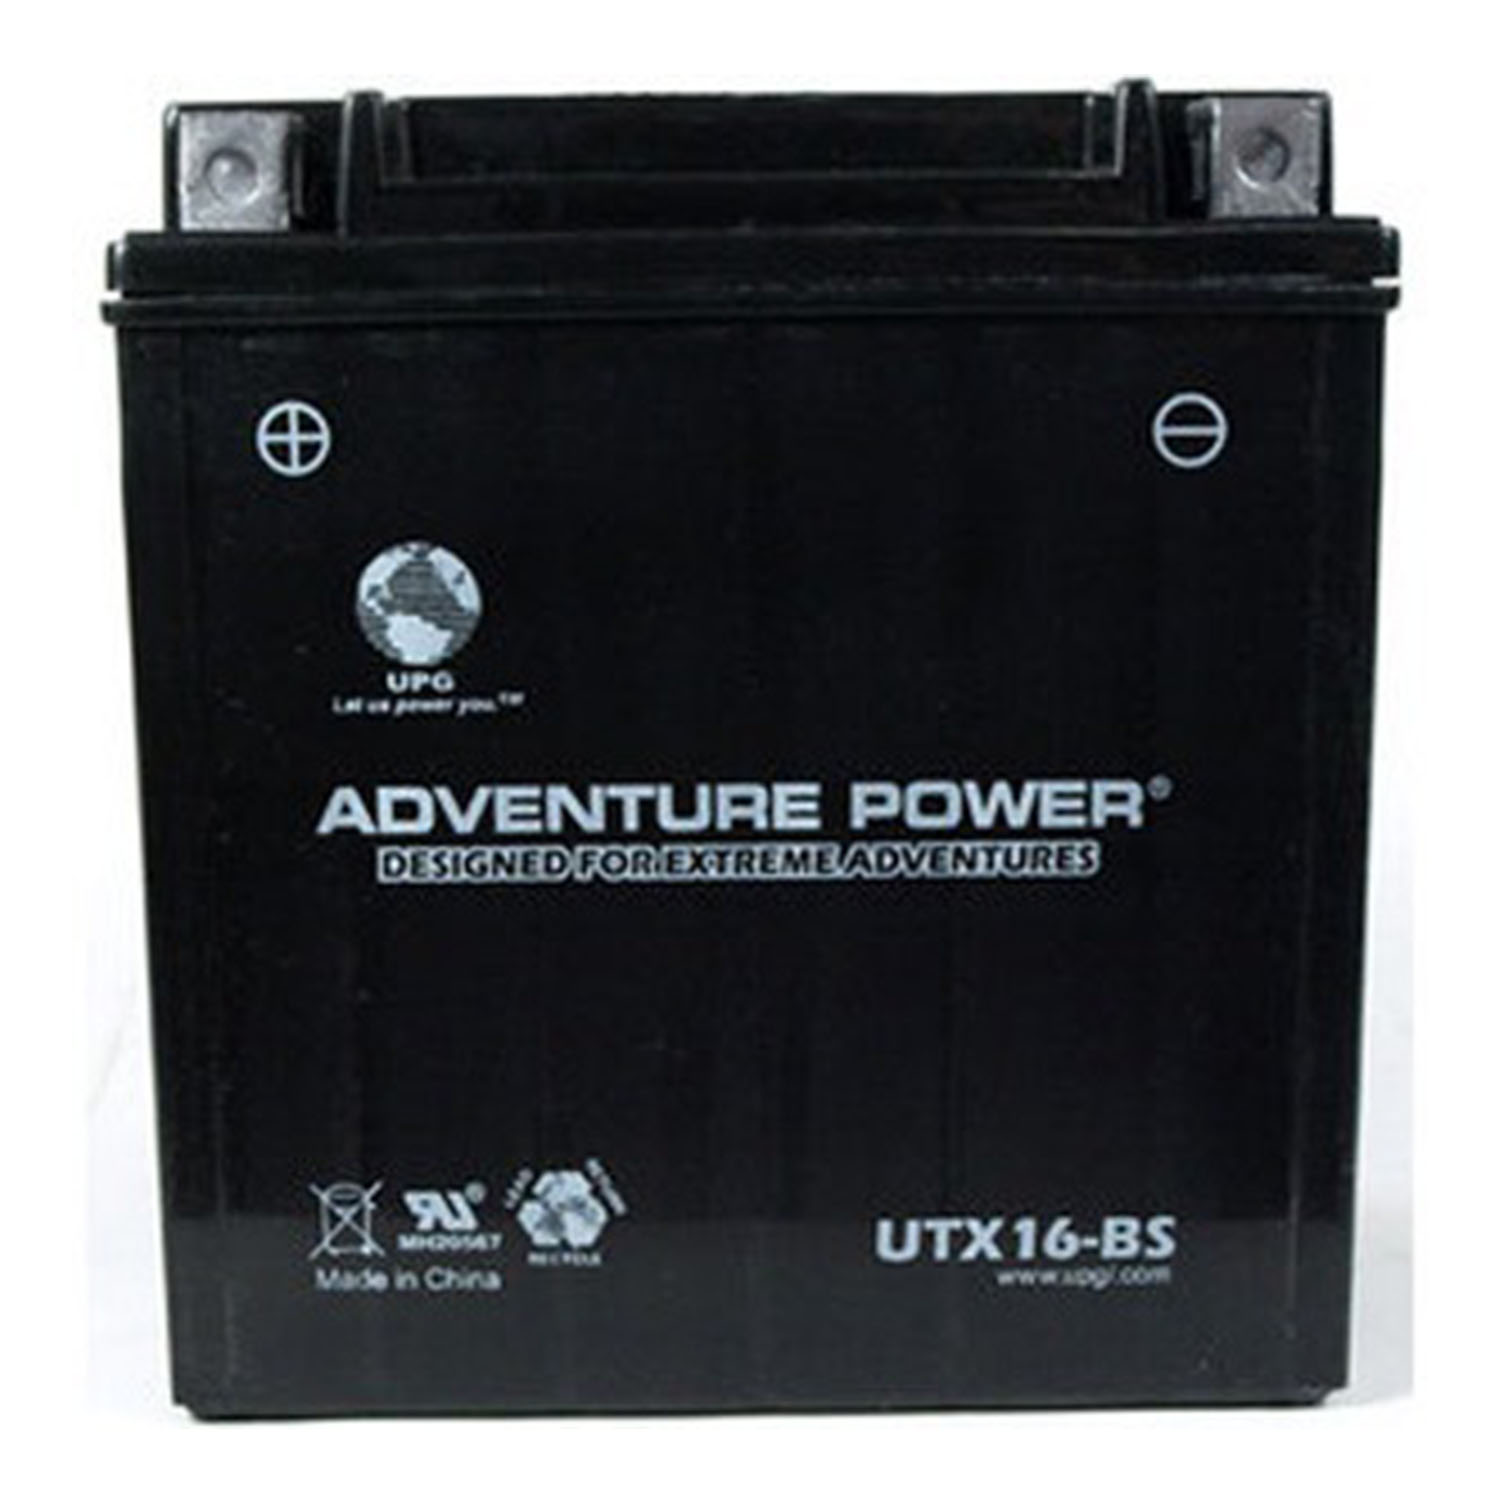 UTX16-BS 12V Battery for Suzuki 500 LT-A500F QuadMaster 2000-2001